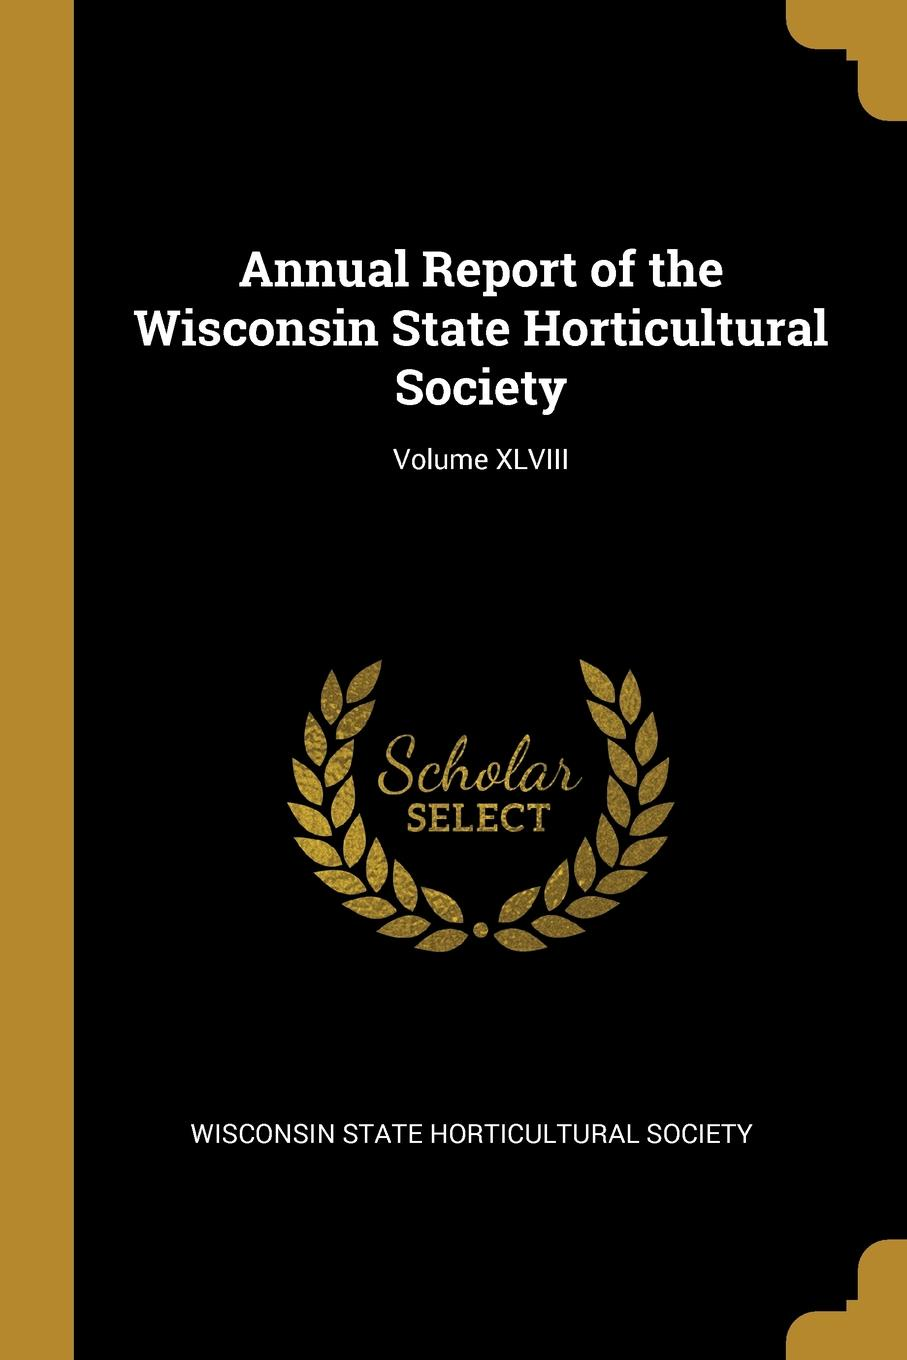 Wisconsin State Horticultural Society Annual Report of the Wisconsin State Horticultural Society; Volume XLVIII